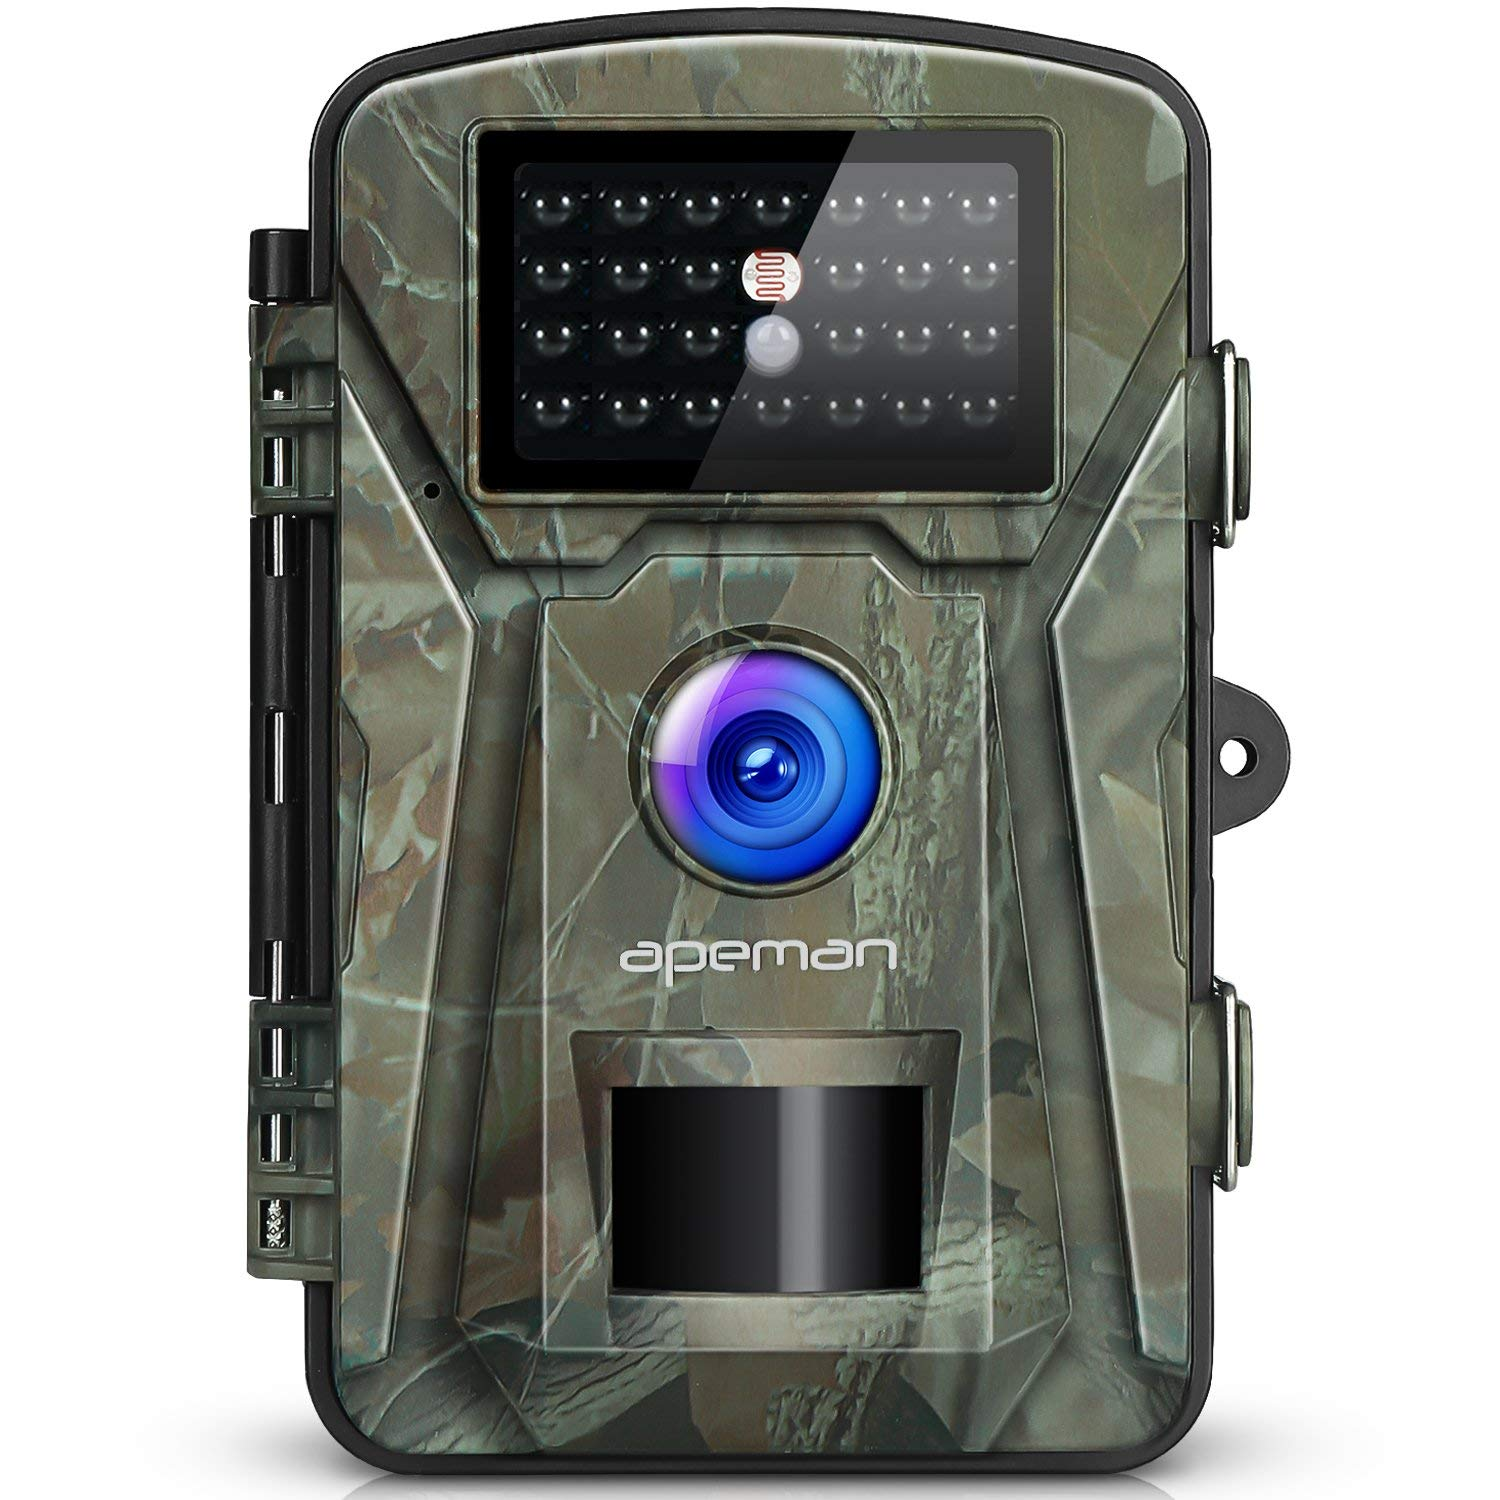 "APEMAN Trail Camera 12MP 1080P 2.4"" LCD Game & Hunting Camera with 940nm Upgrading IR LEDs Night Vision up to 65ft/20m IP66 - NEW VERSION"